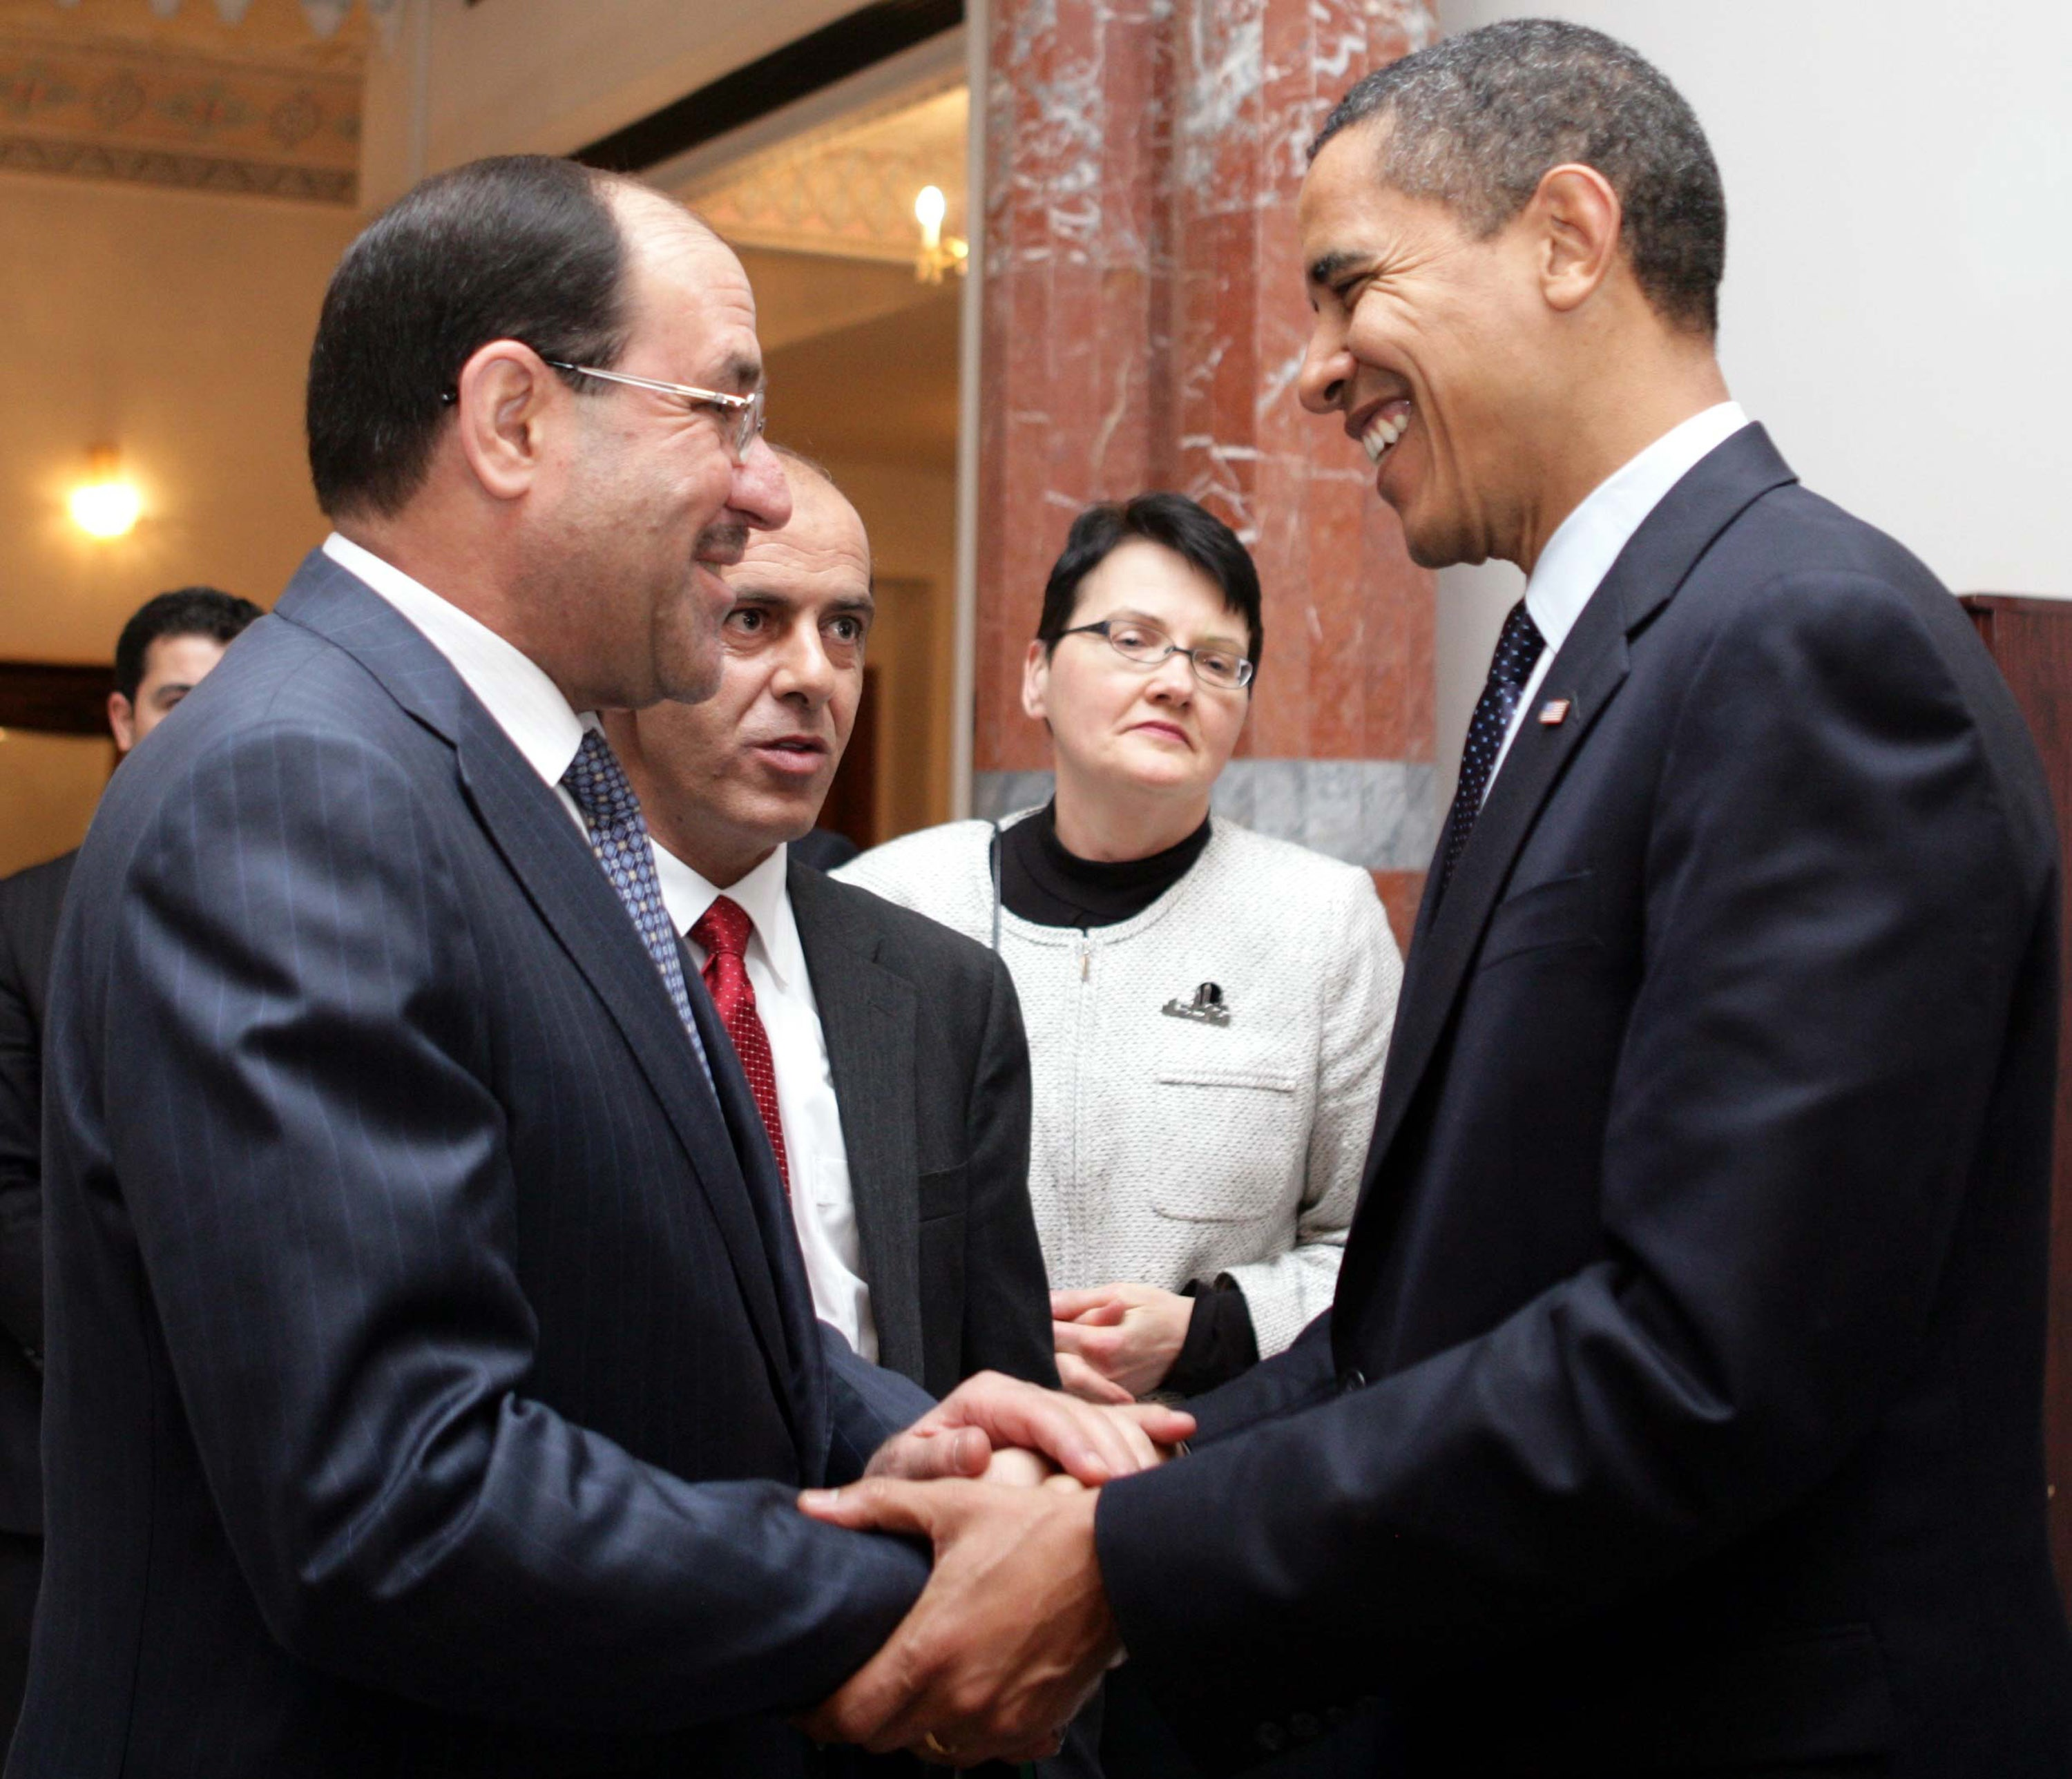 Iraqi Prime Minister office via Getty Images. Iraqi Prime Minister Nuri al-Maliki (L) shakes hands with U.S. President Barack Obama (R) on April 7, 2009 in Baghdad, Iraq. Obama made a surprise visit to Iraq and spoke about the transition of power to the Iraqi government.